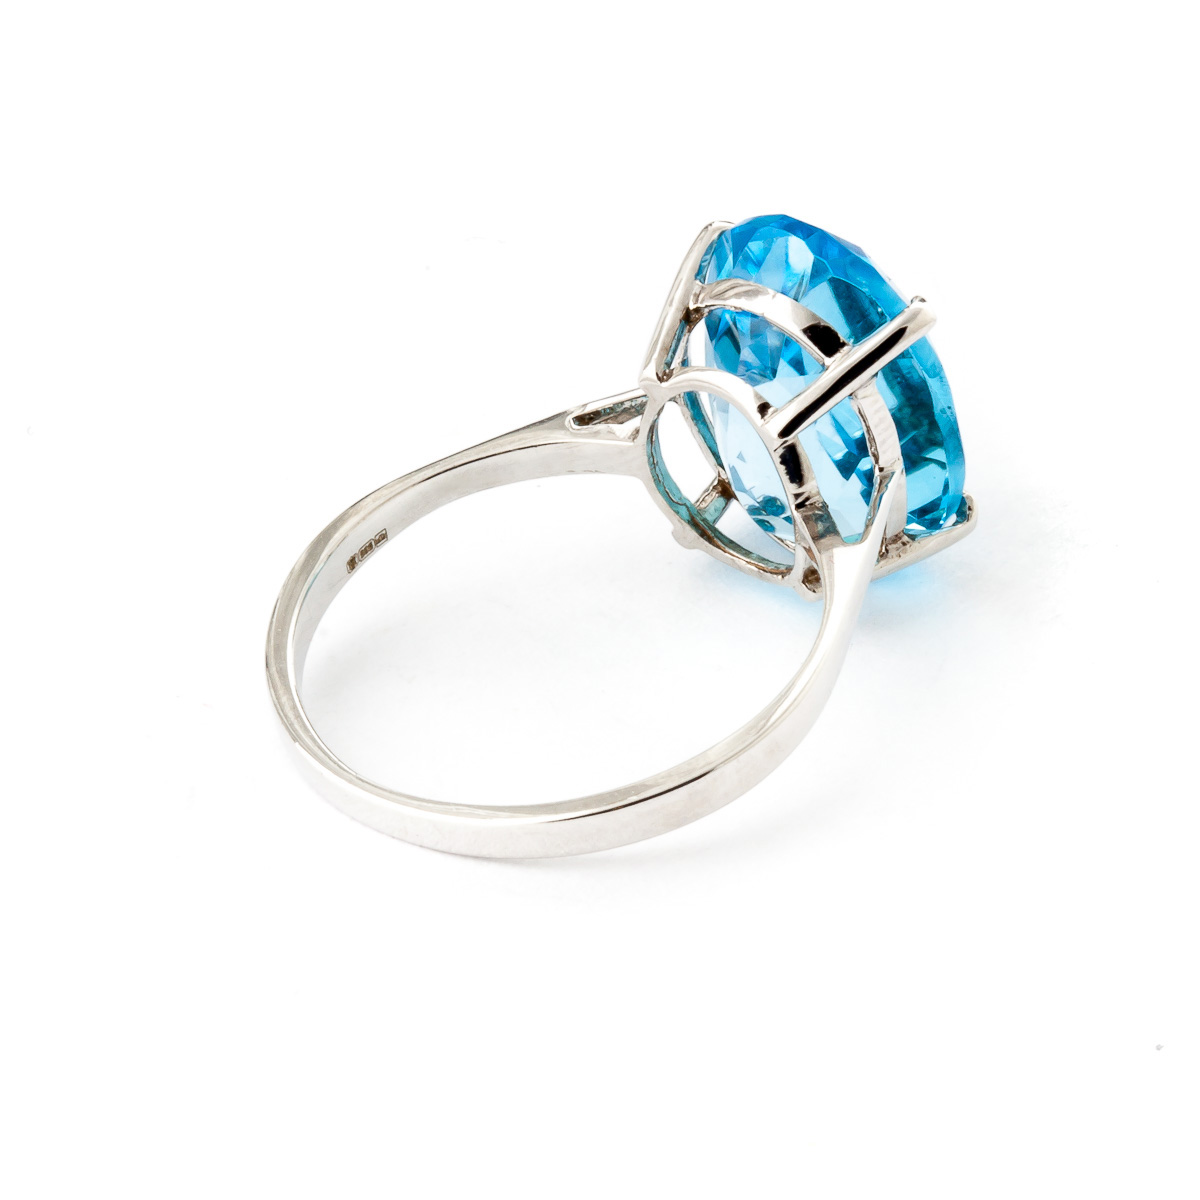 Oval Cut Blue Topaz Ring 8.0ct in 9ct White Gold